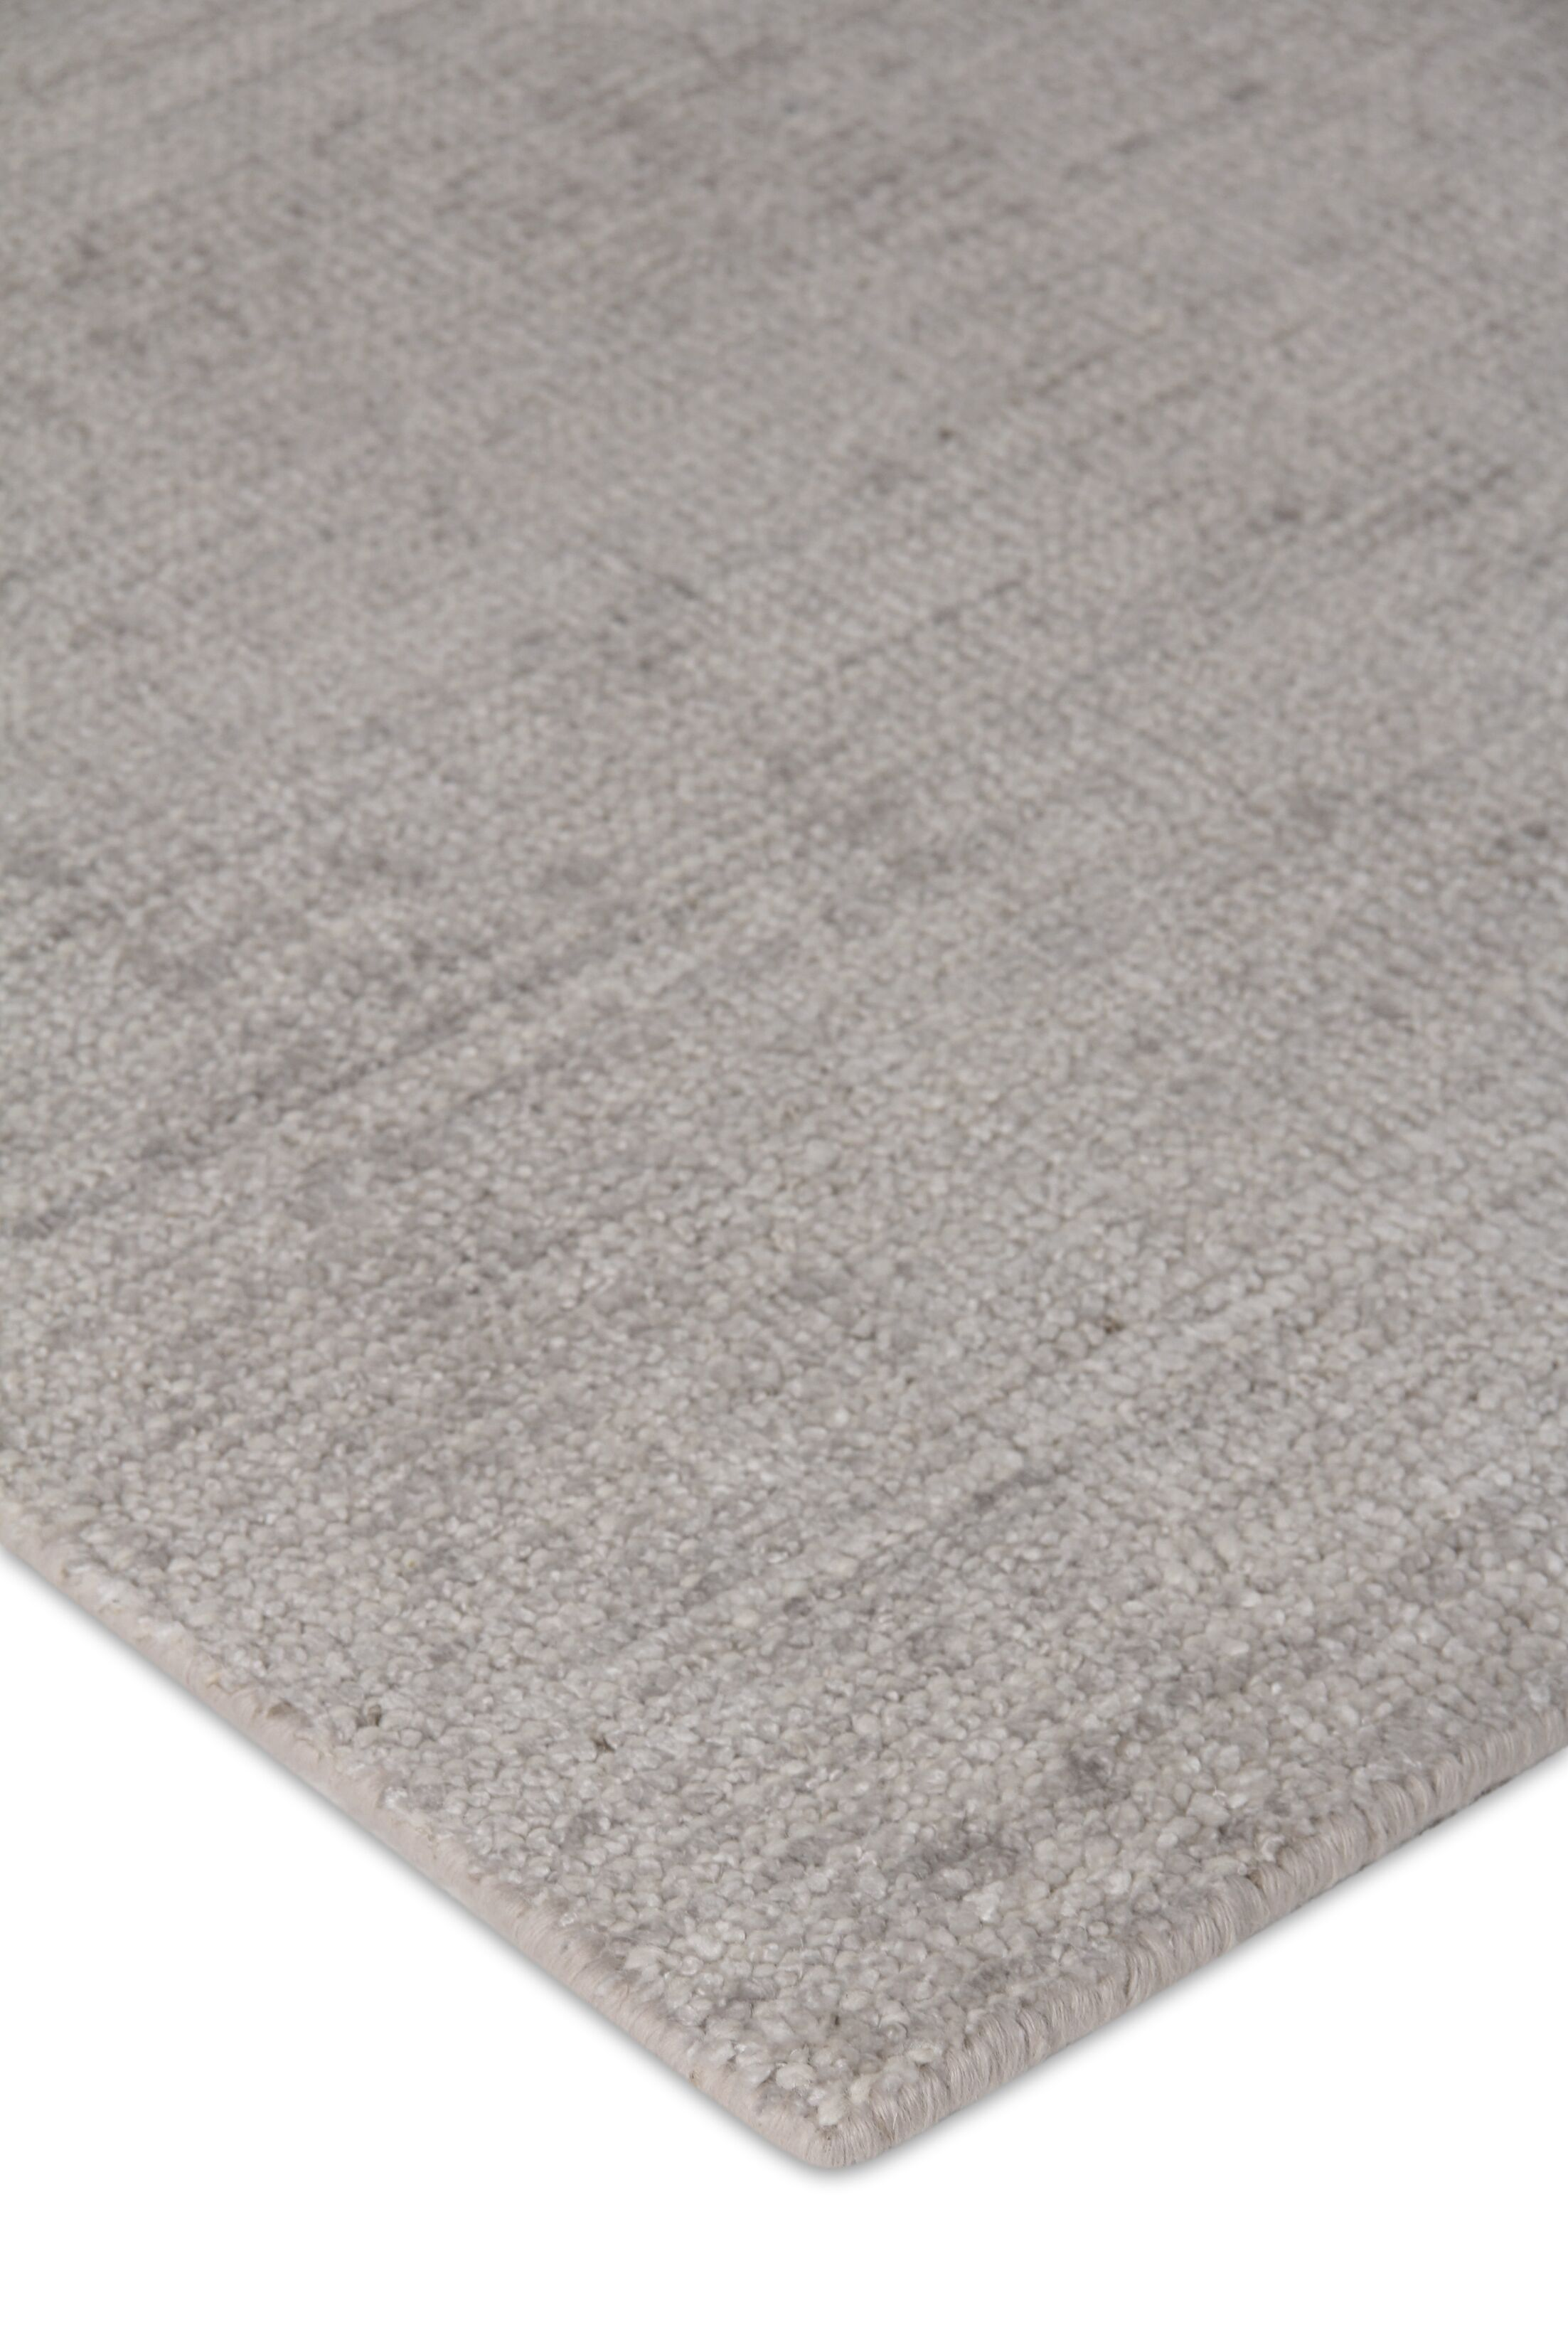 Catalina Hand Woven Gray Area Rug Rug Size: Rectangle 10' x 14'